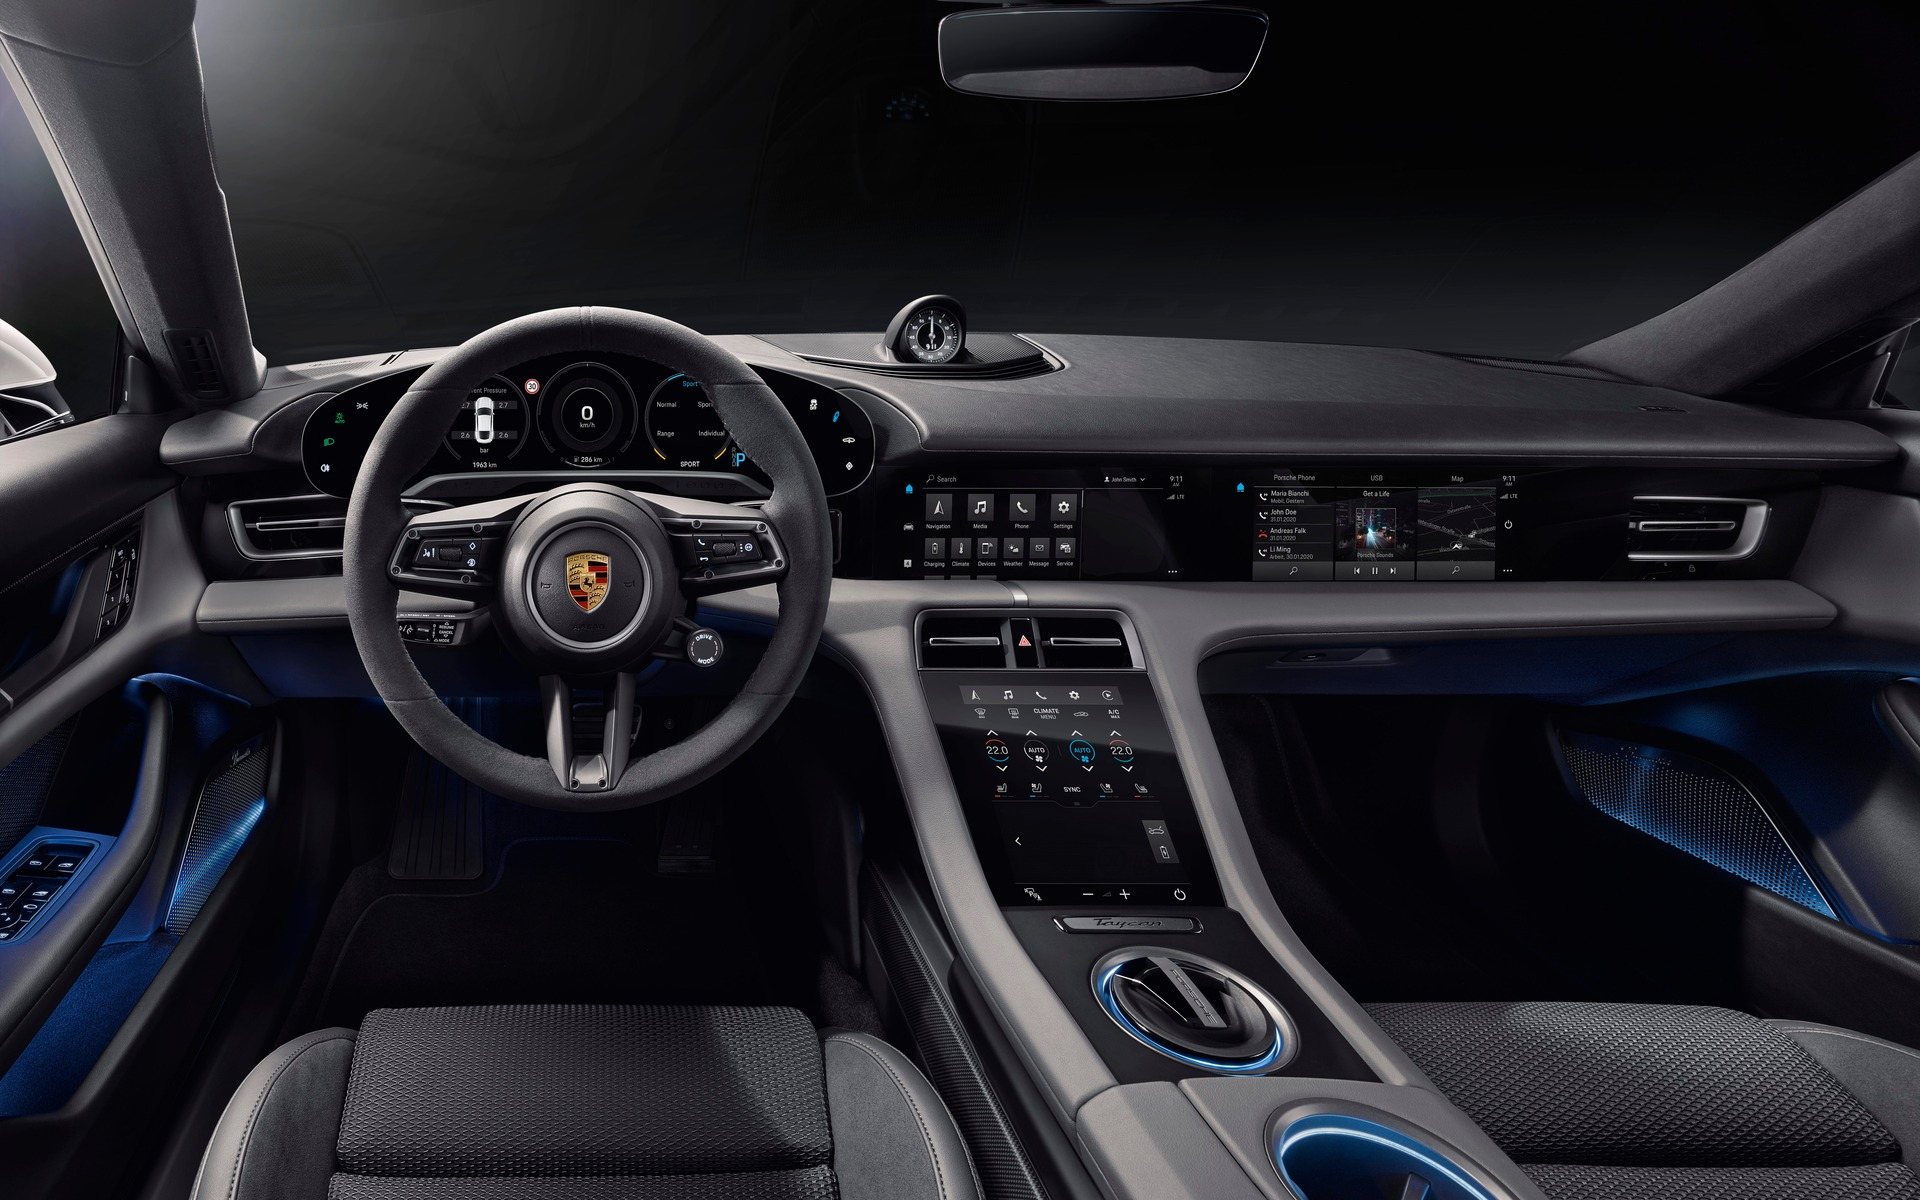 2020 Porsche Taycan Interior Revealed Ahead Of Its Official Debut The Car Guide